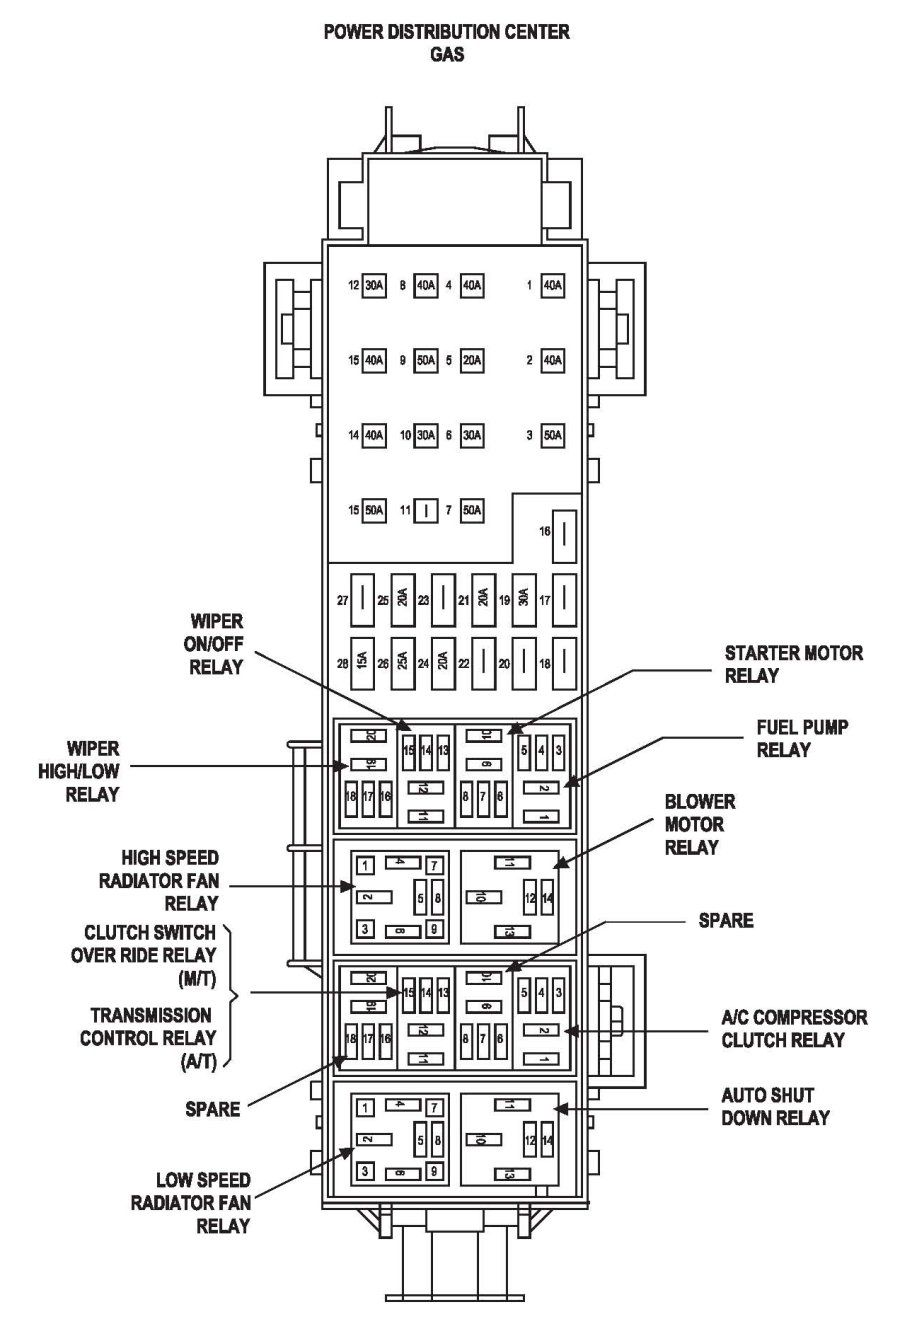 93 wrangler fuse box wiring library rh 63 bloxhuette de 05 dodge durango fuse box diagram trailer fuse block diagram [ 900 x 1336 Pixel ]